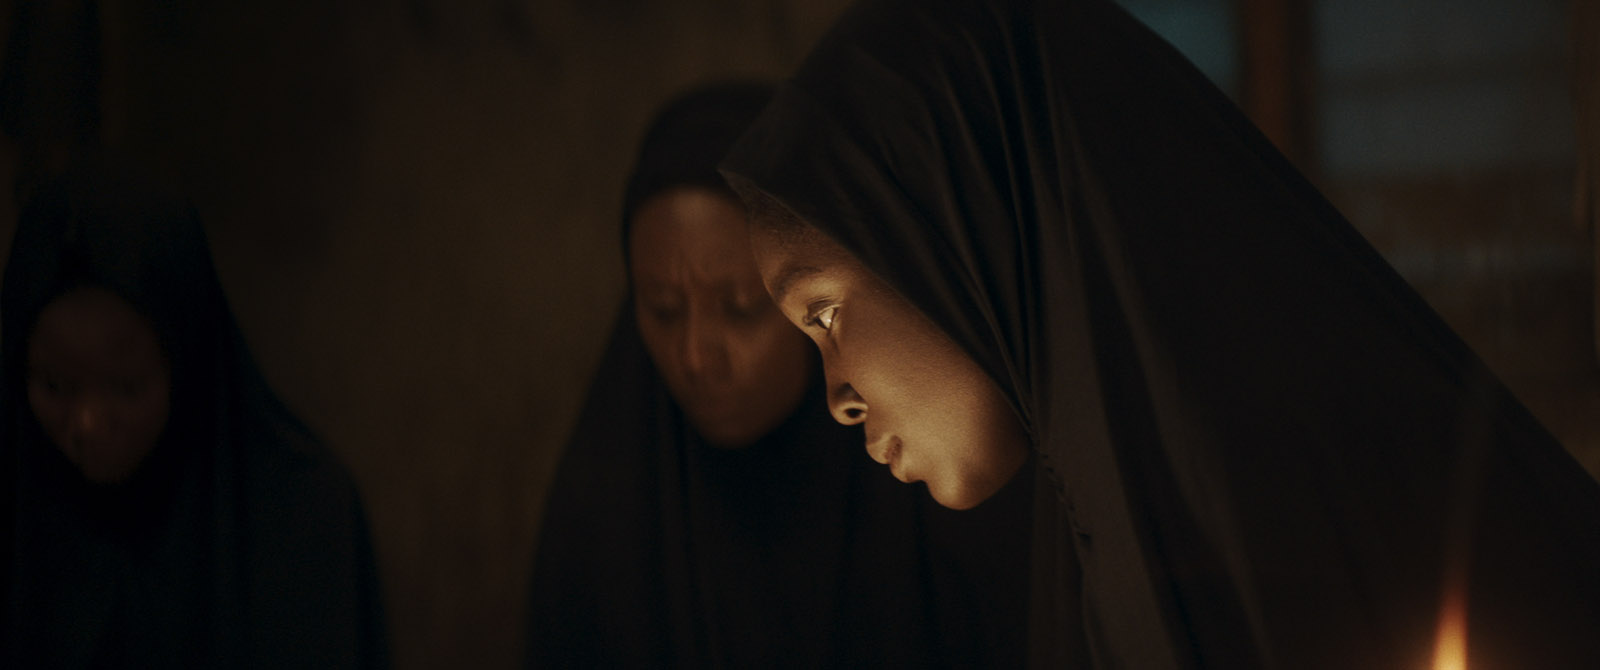 The Milkmaid directed by Desmond Ovbiagele